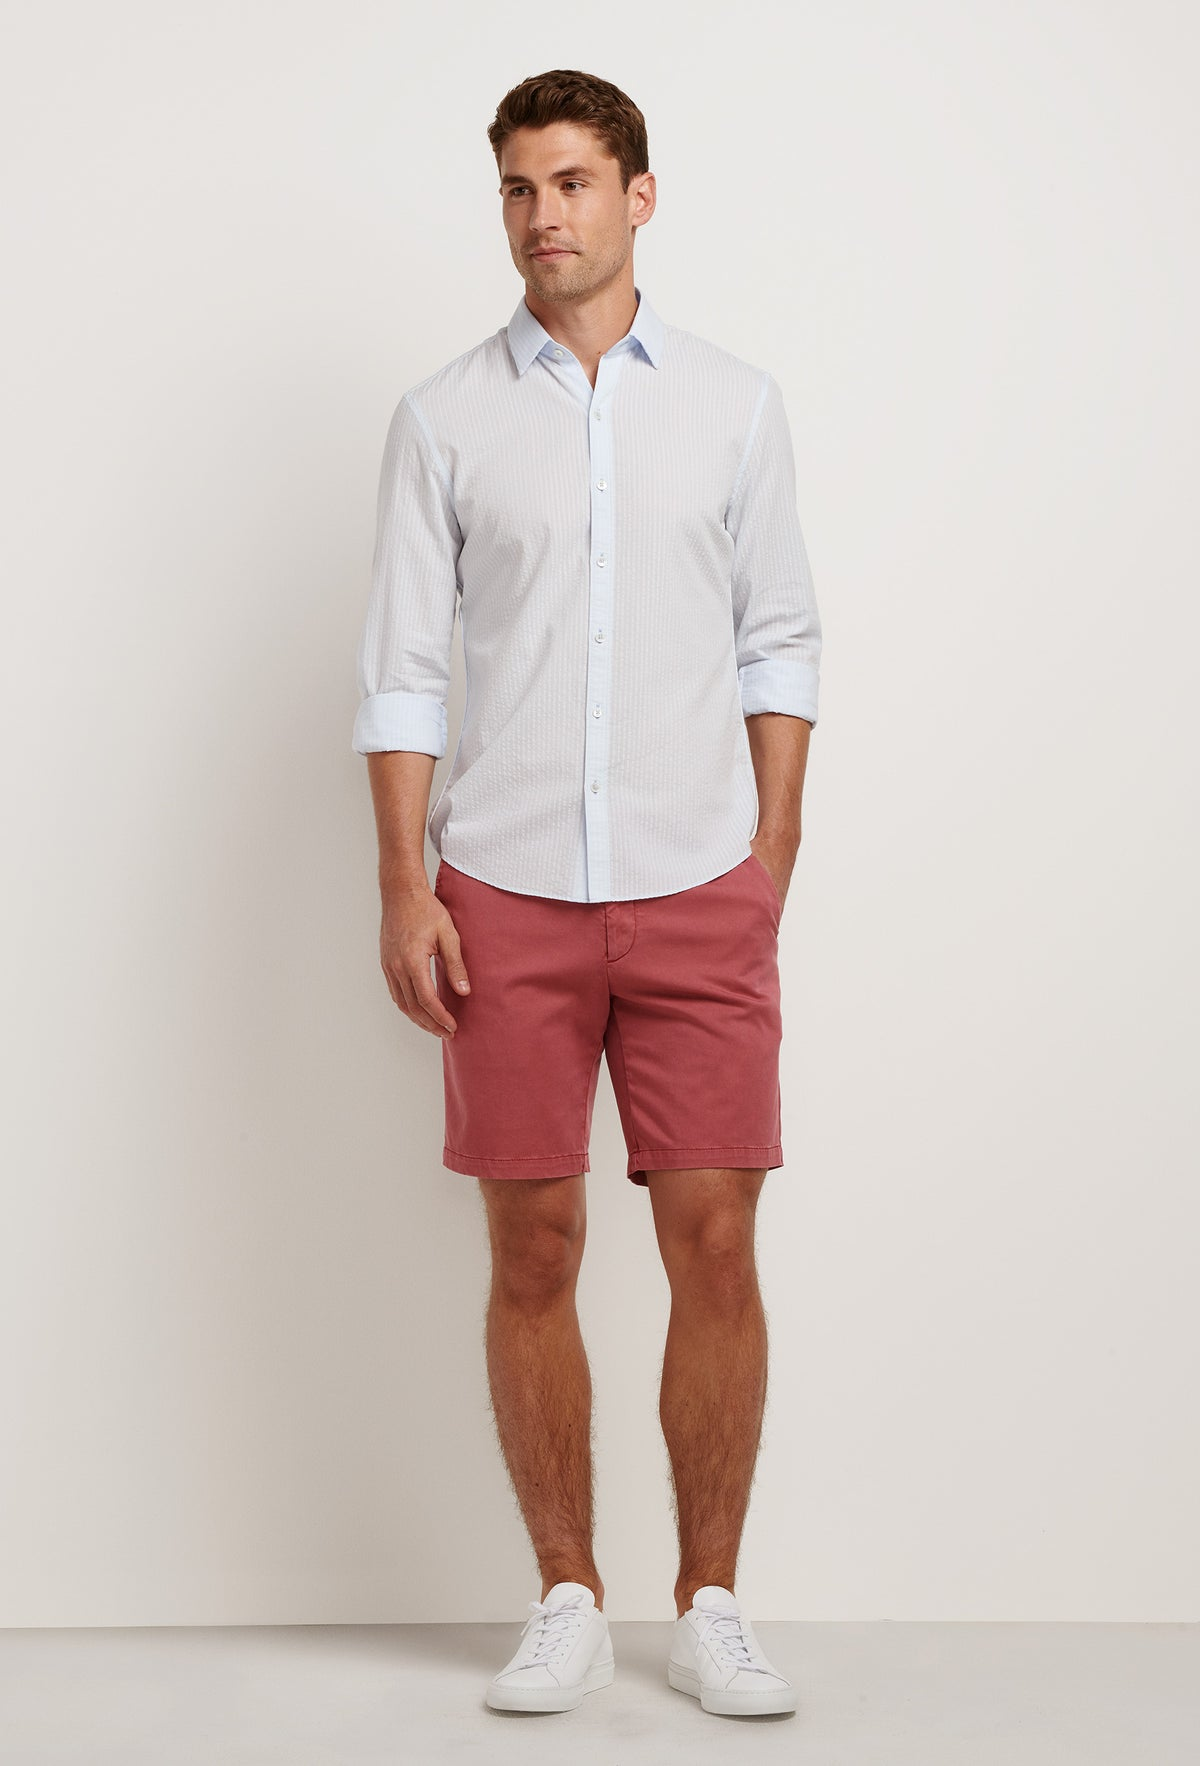 ZACHARY-PRELL-Blake-ShirtsModern-Menswear-New-Dress-Code